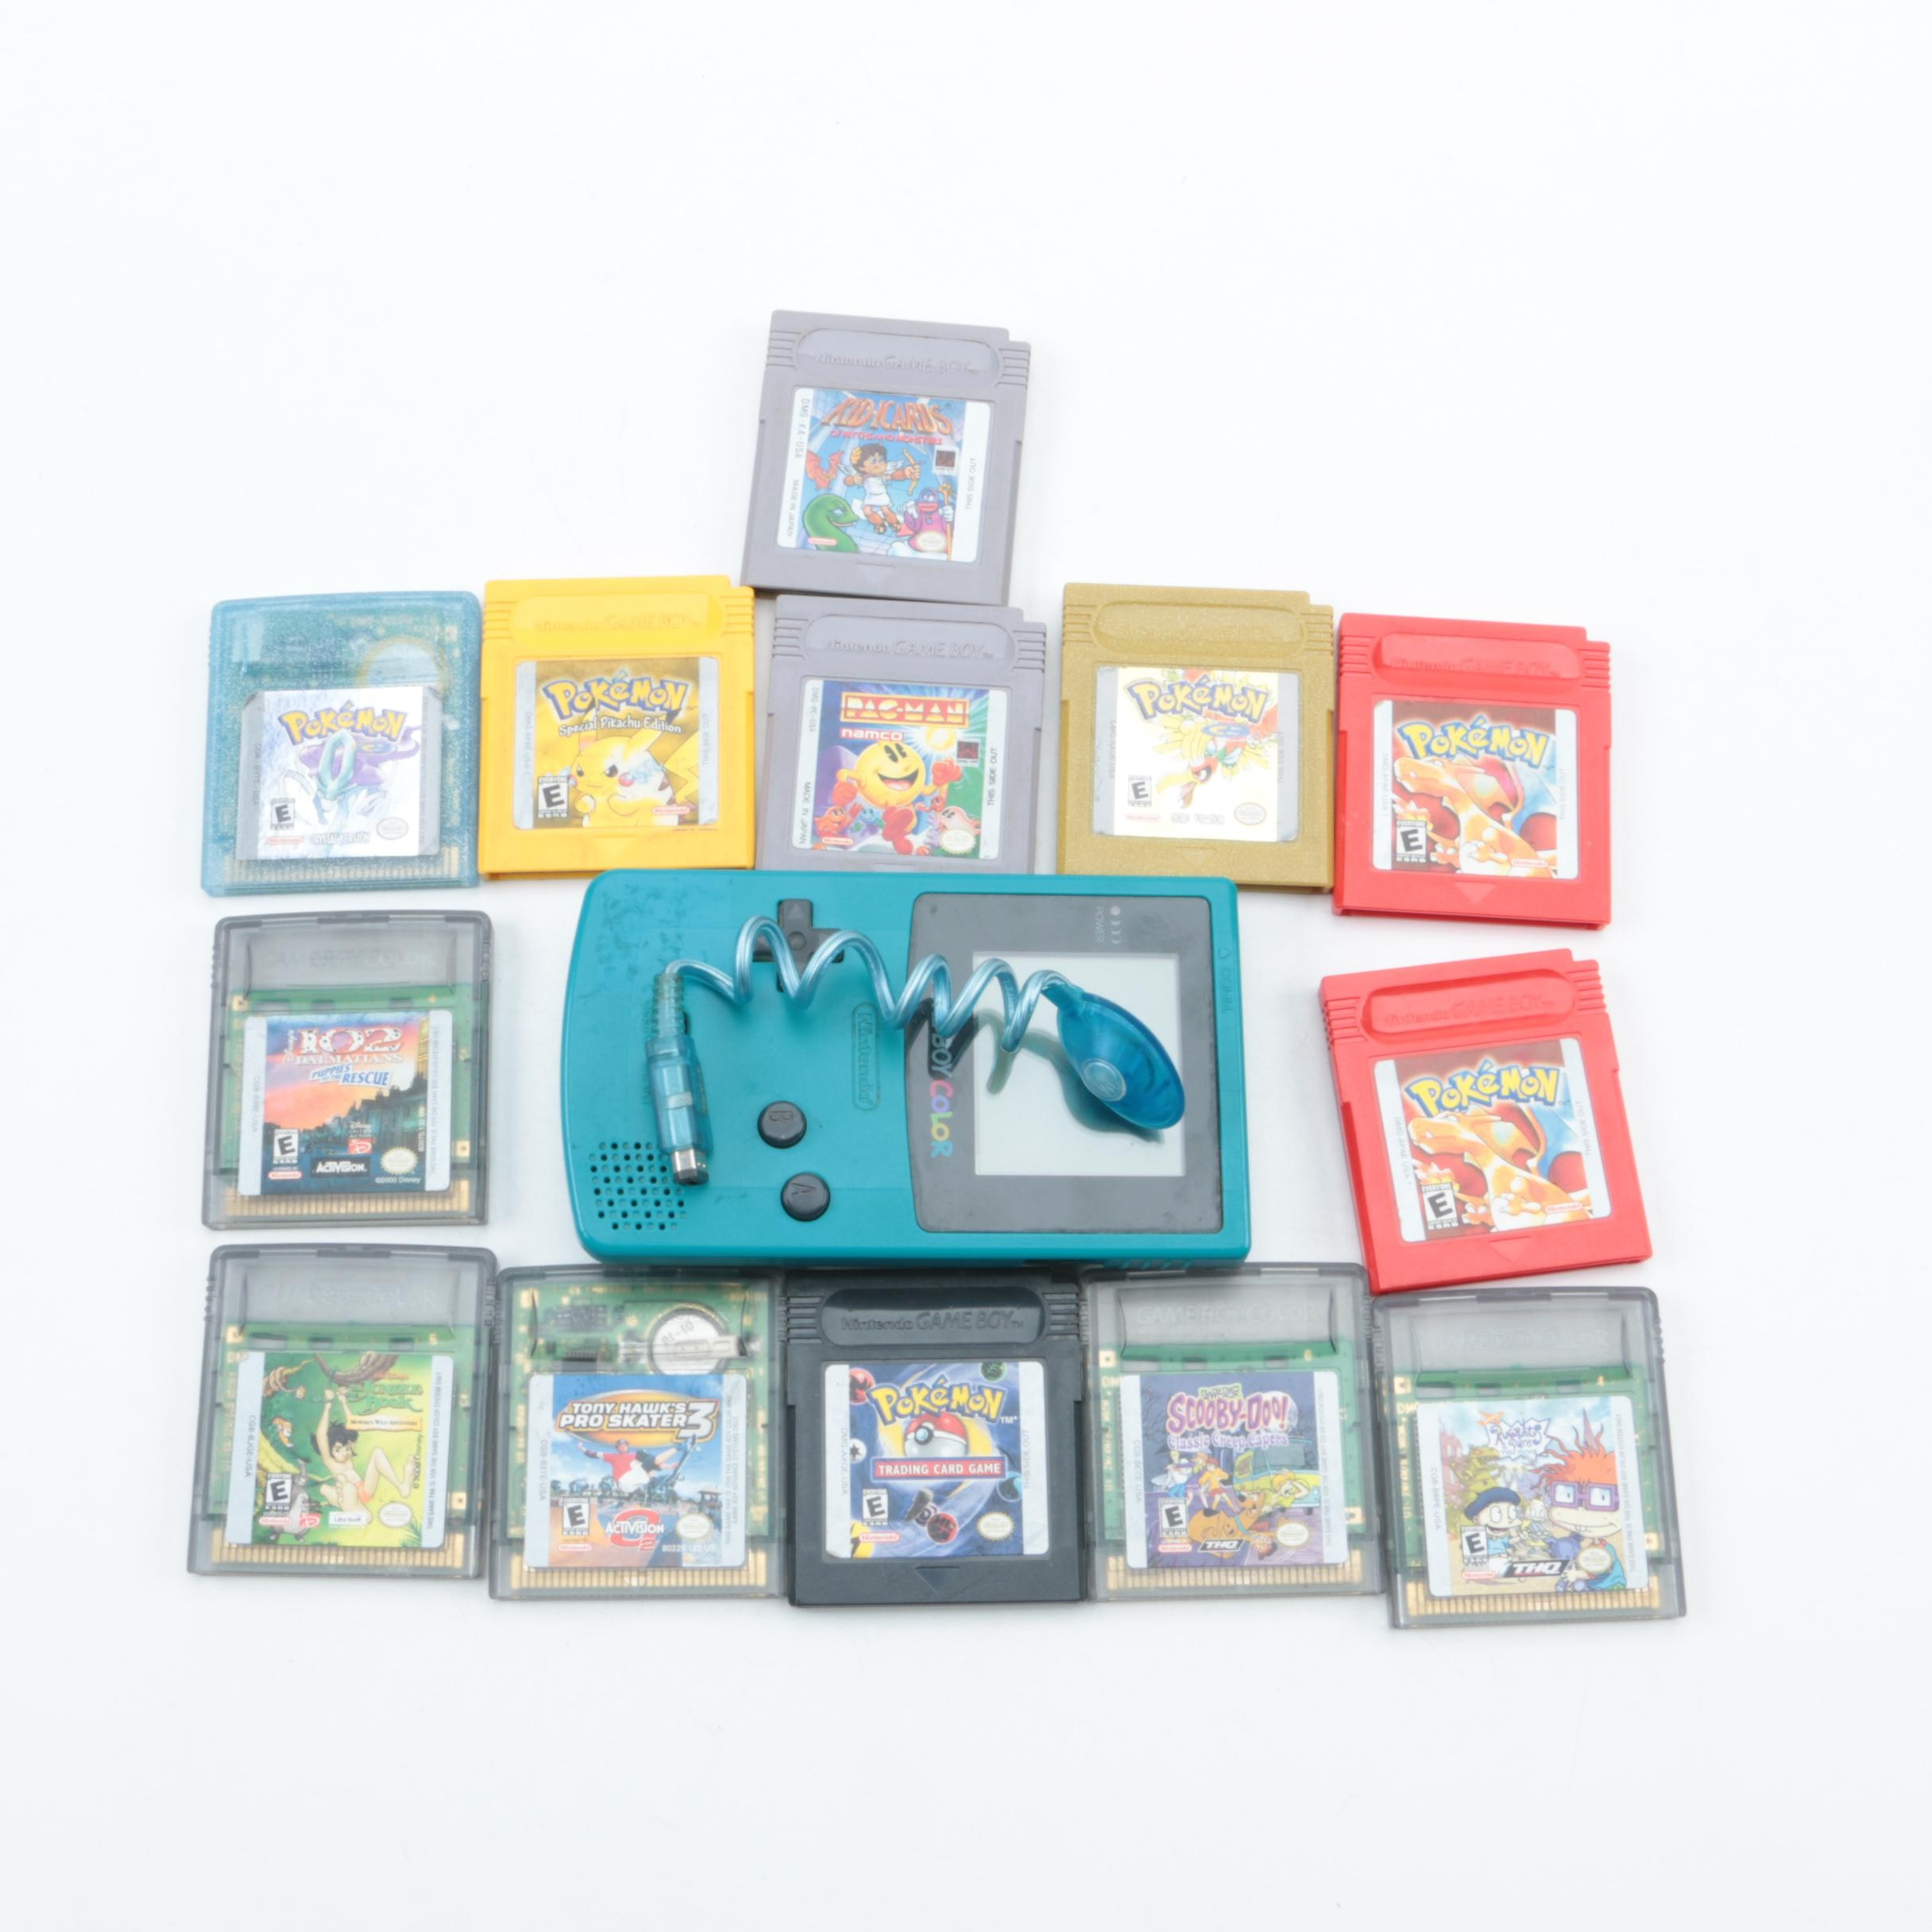 Game Boy Color Handheld Console and Games